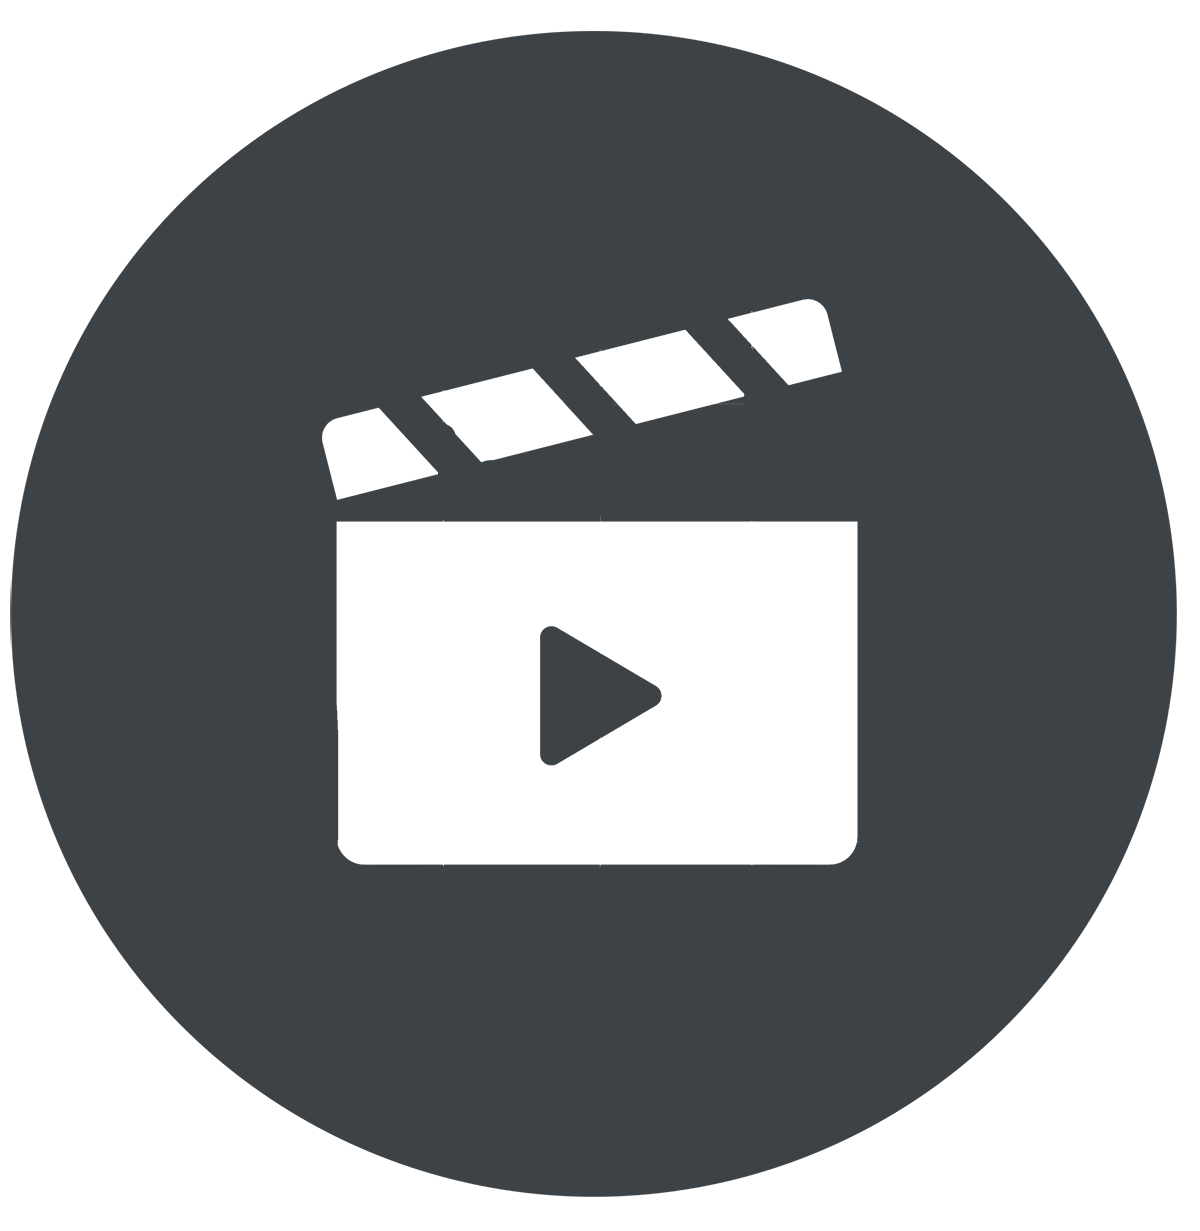 Motion Picture and Television Production